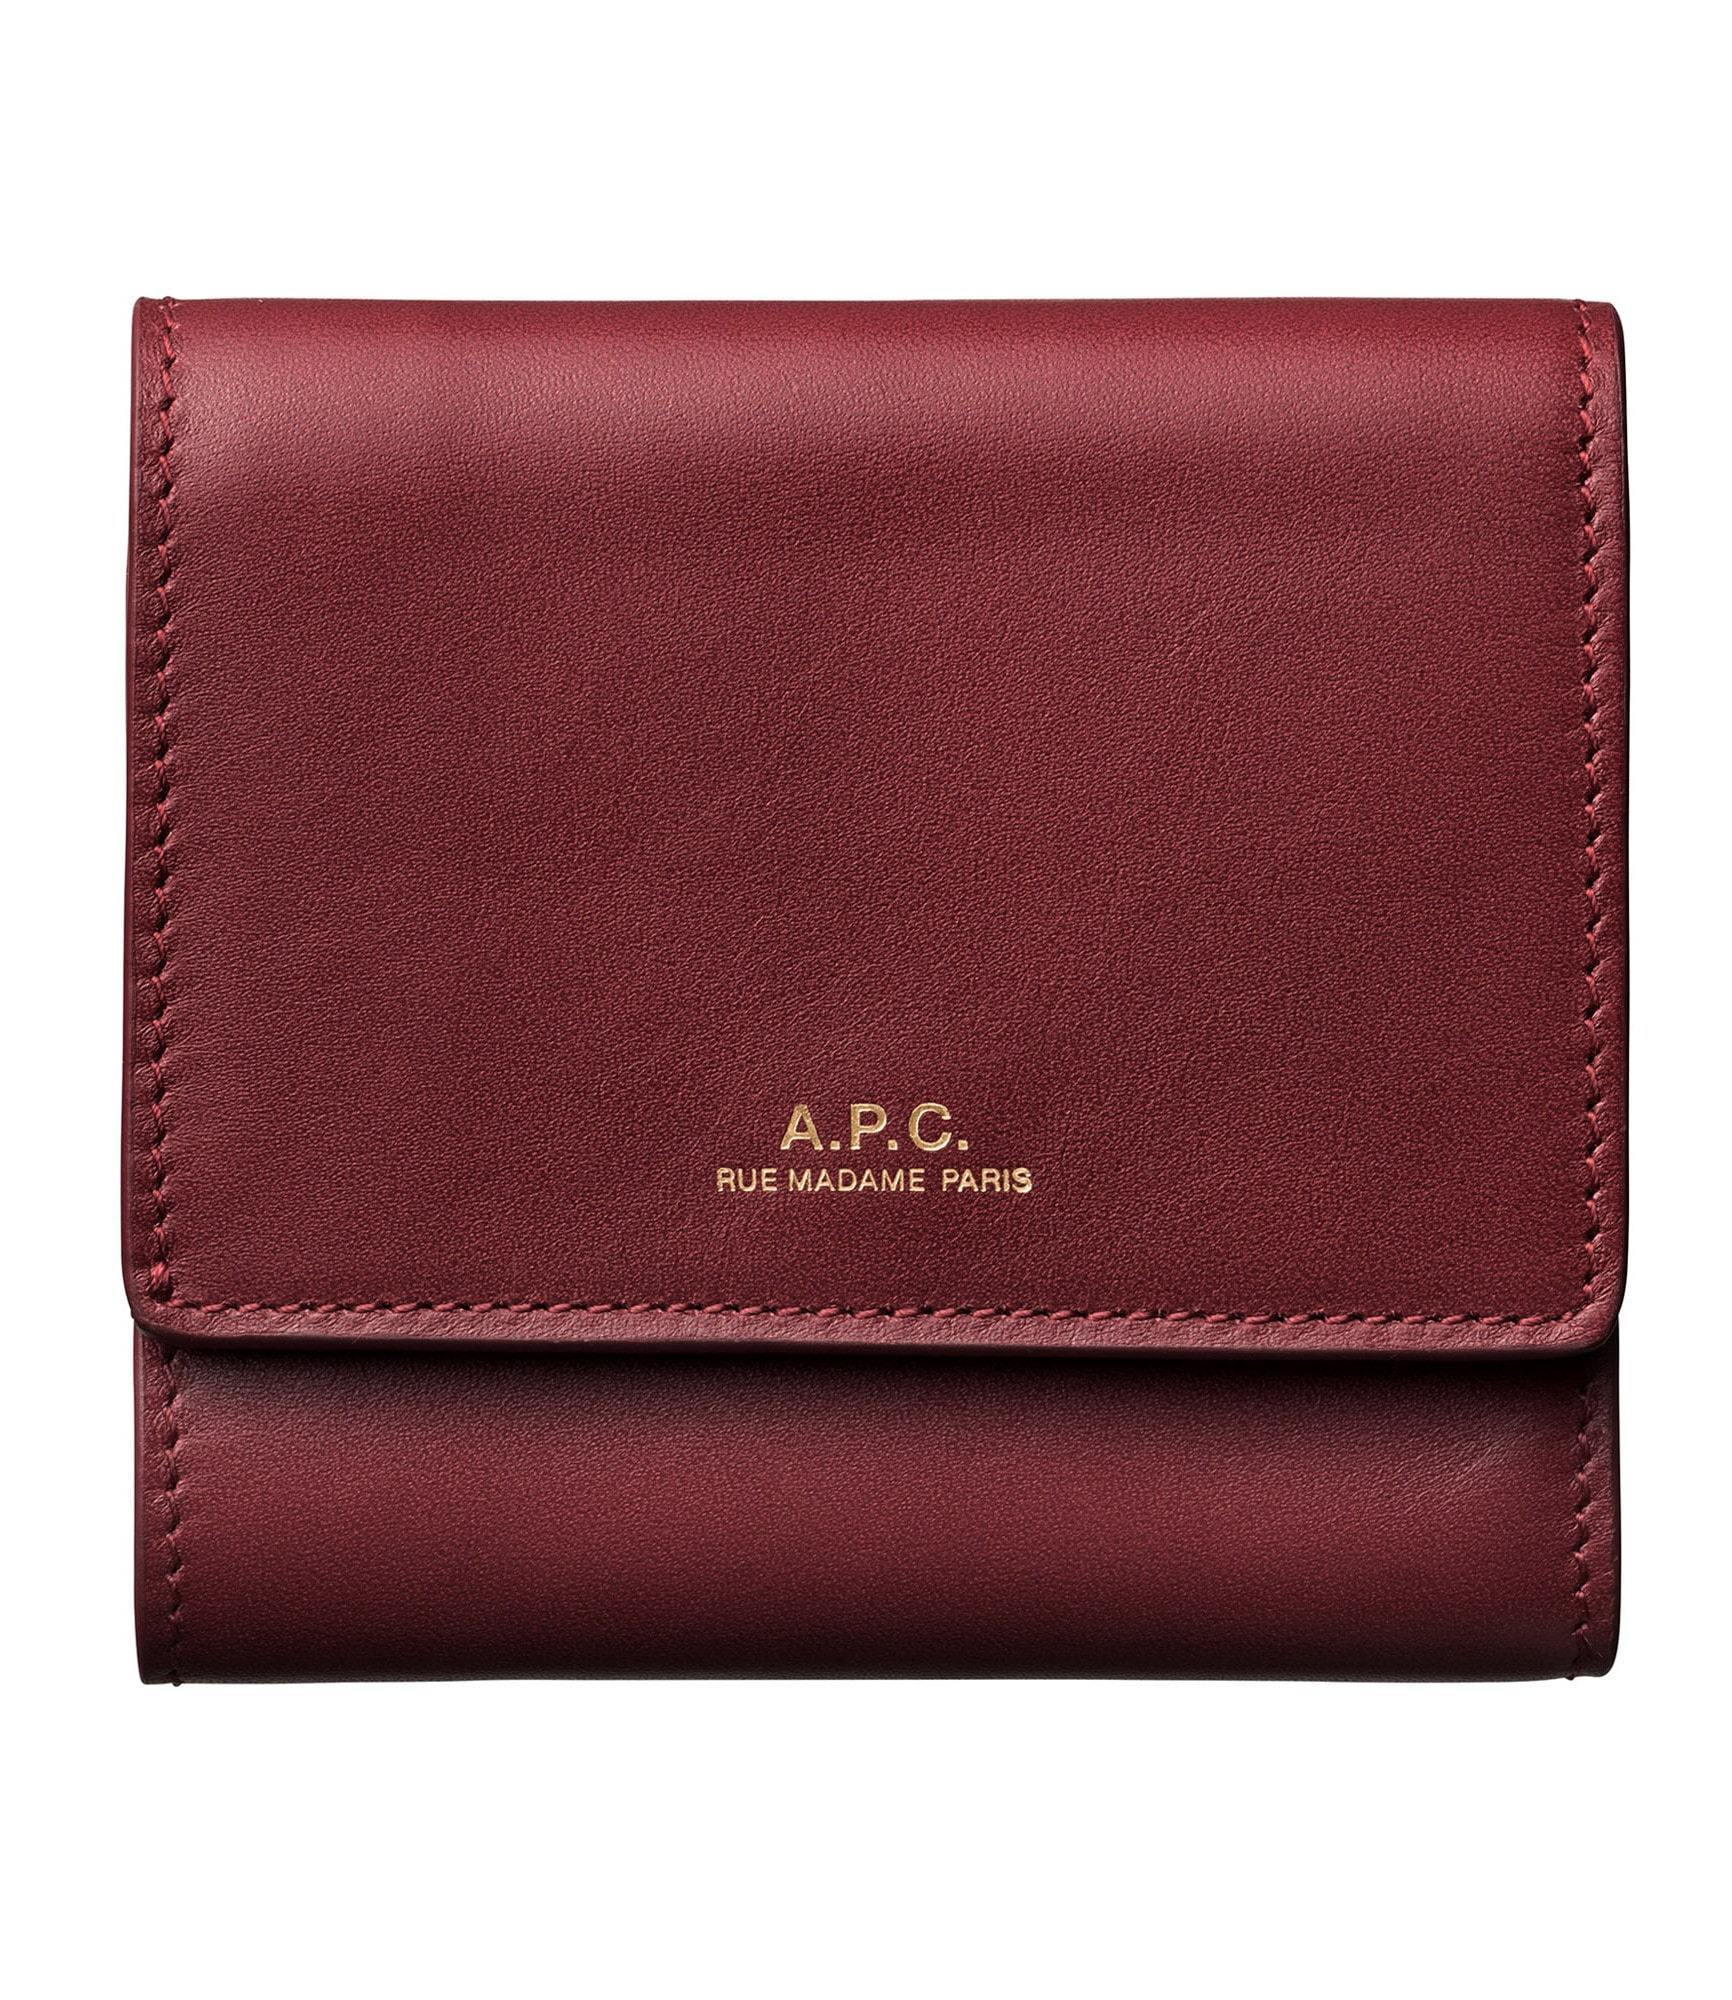 shop a.p.c. wallets & card holders